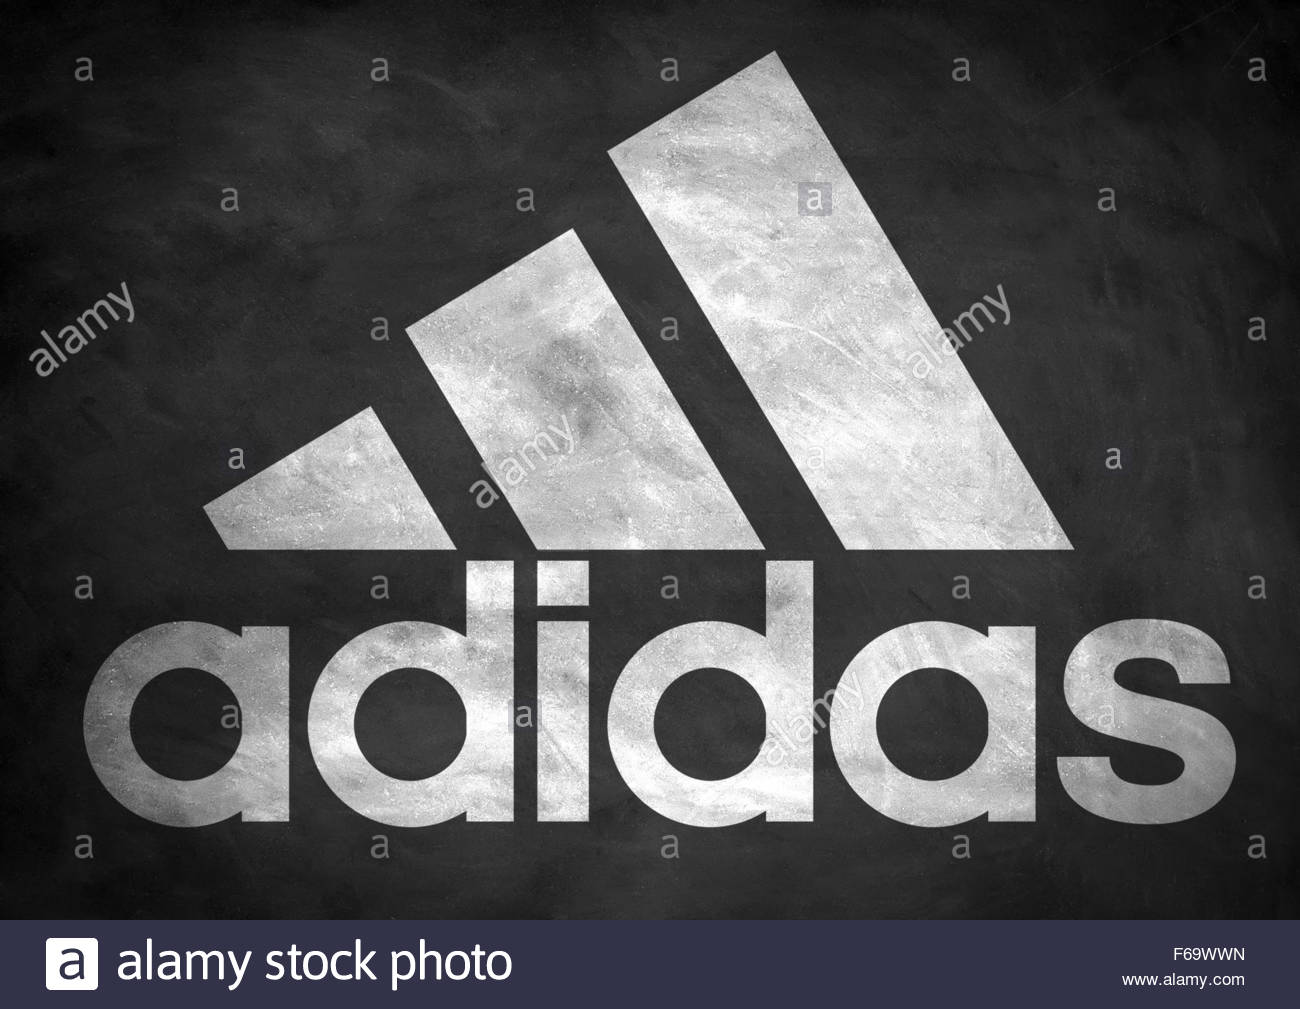 adidas logo stock photos amp adidas logo stock images alamy